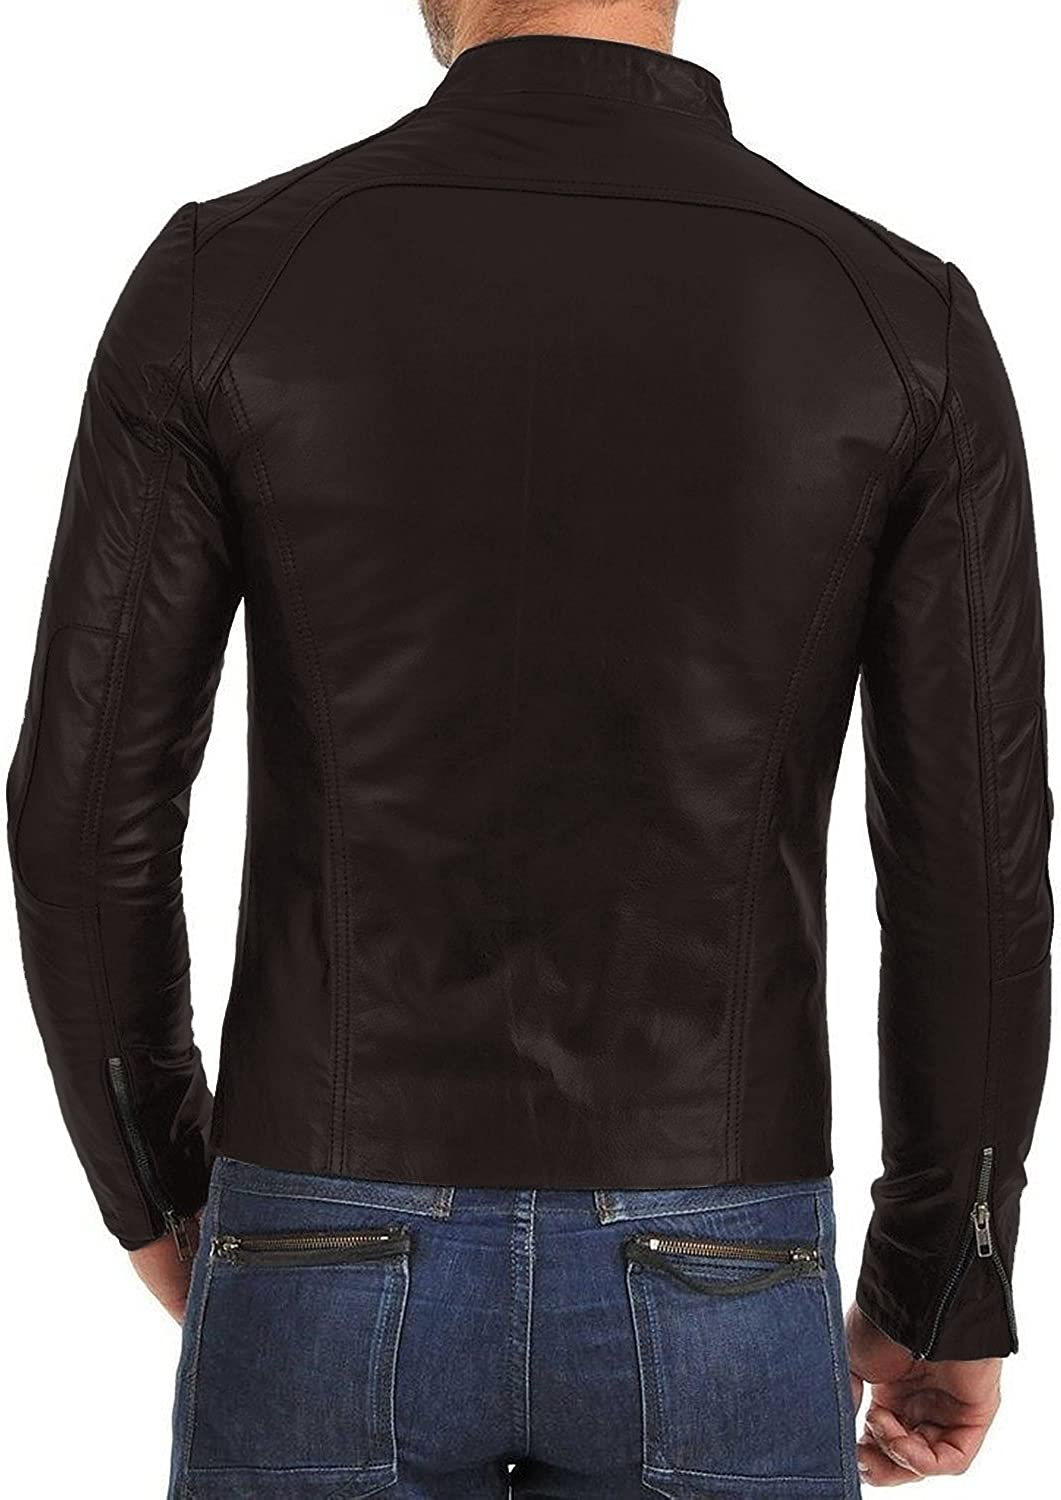 Laverapelle Mens Genuine Lambskin Leather Jacket Black, Racer Jacket 1501343